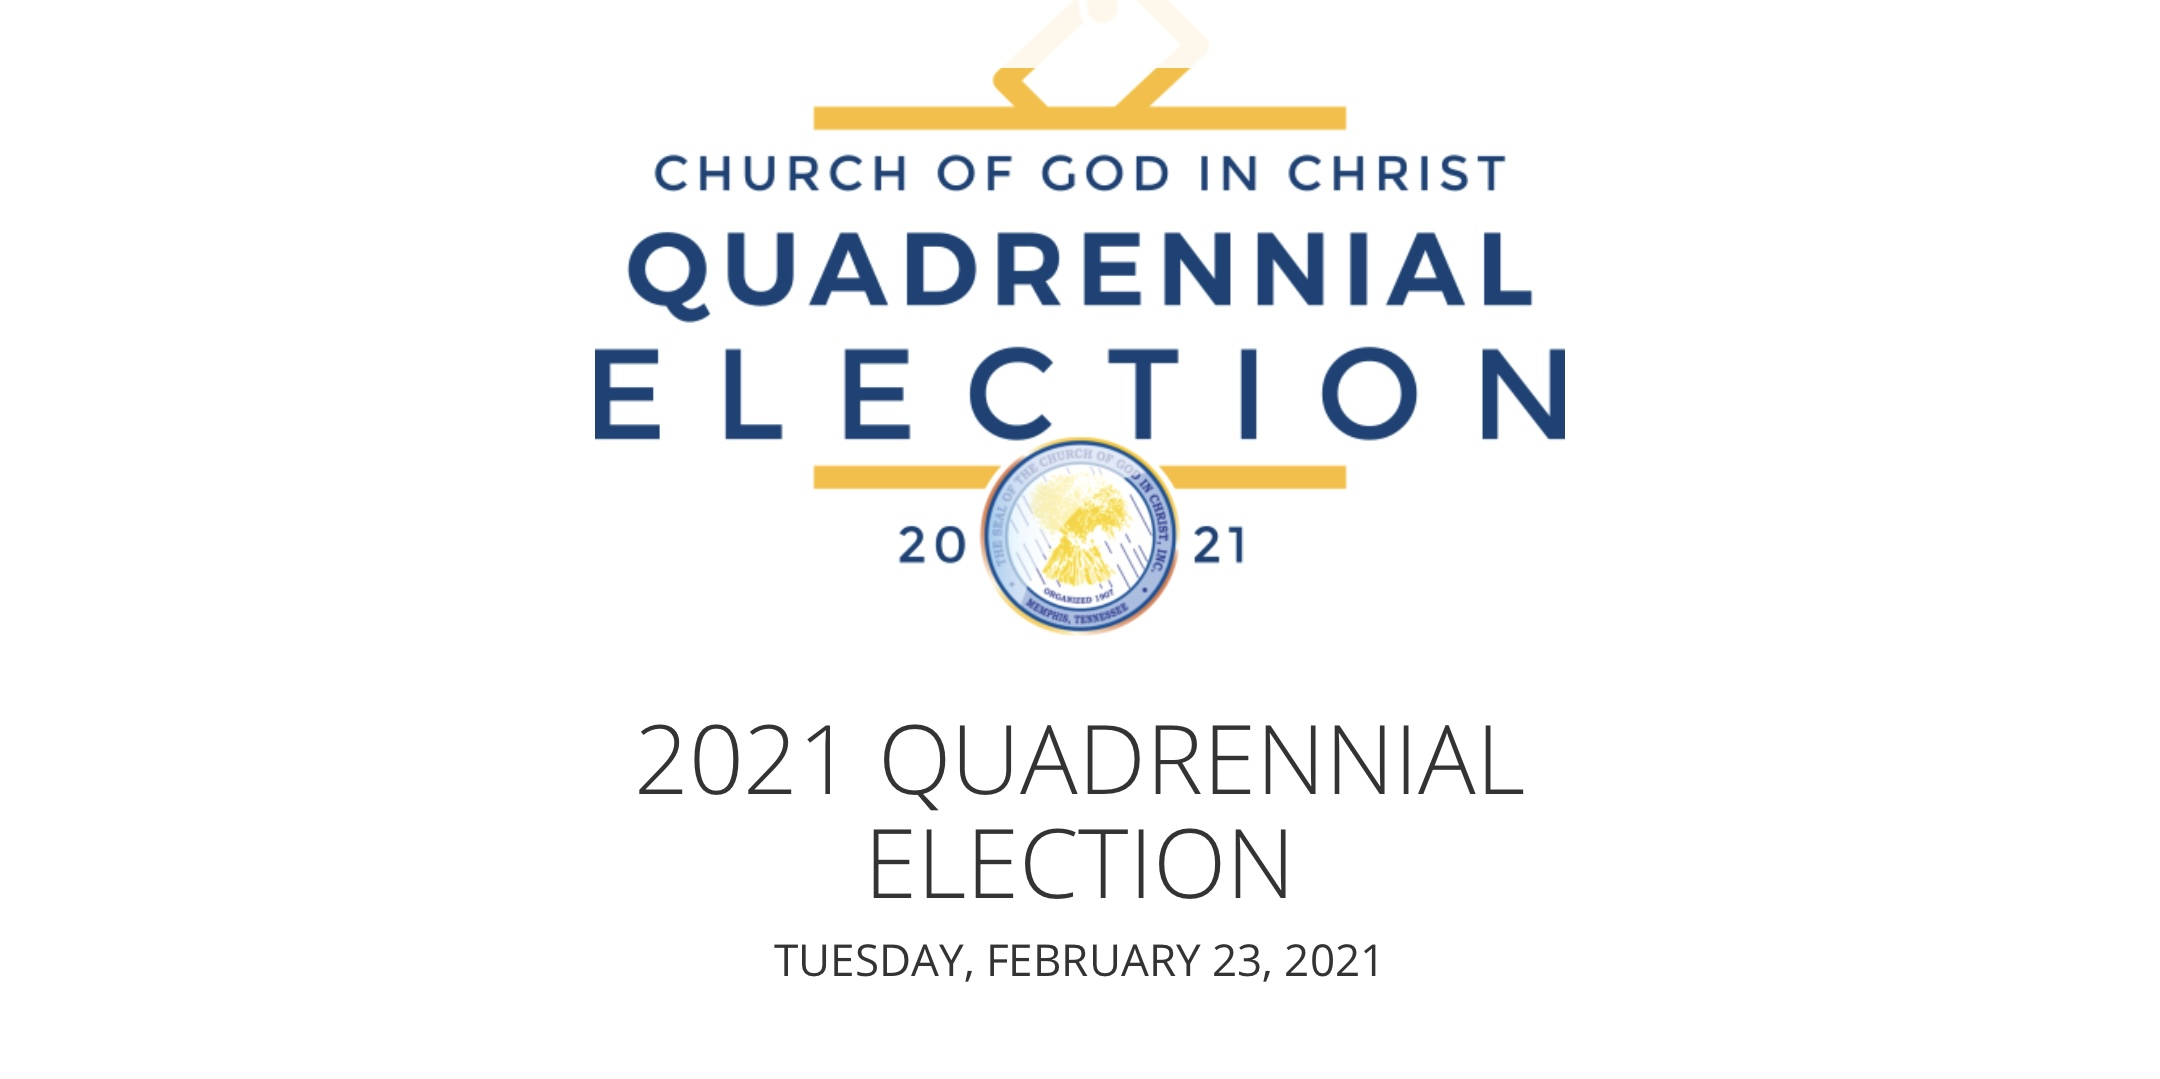 Quadrennial Election 2021